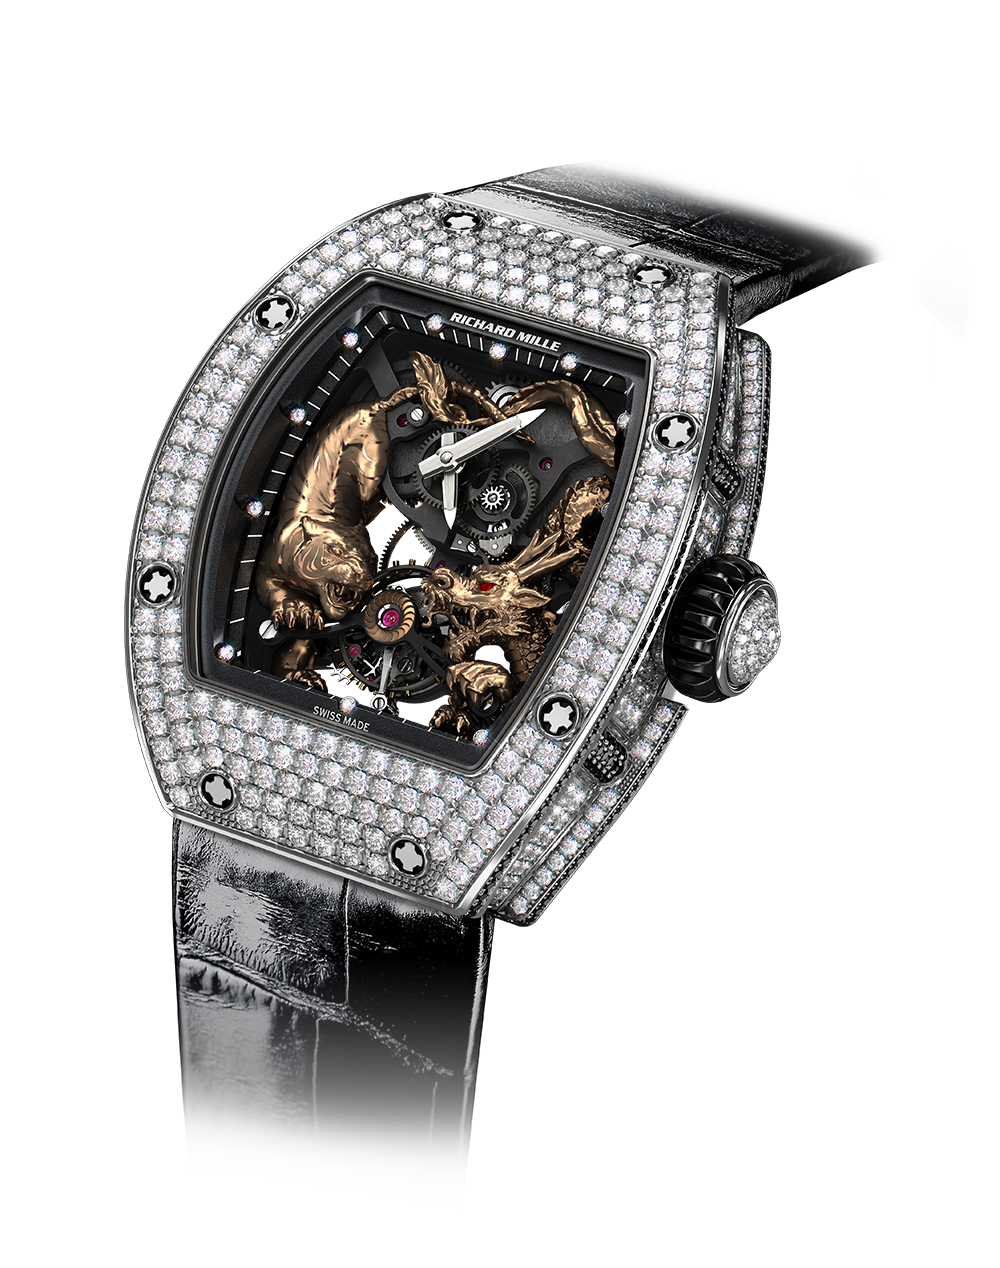 RM 51-01-Tourbillon Tiger and Dragon - Michelle Yeoh